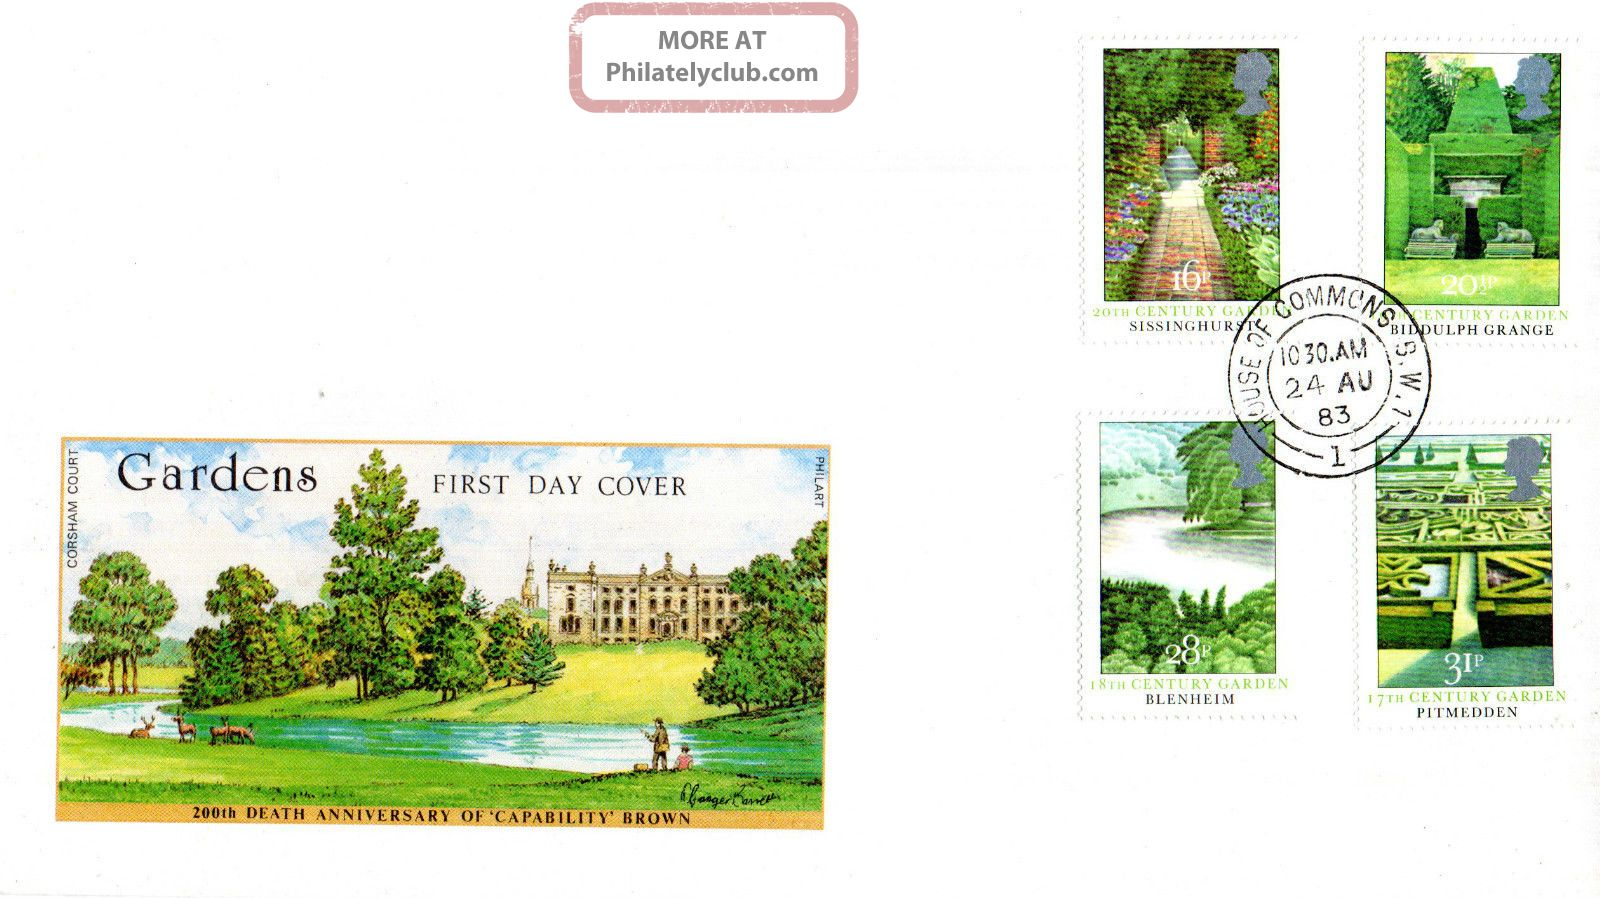 24 August 1983 British Gardens Philart First Day Cover House Of Commons Sw1 Cds Topical Stamps photo